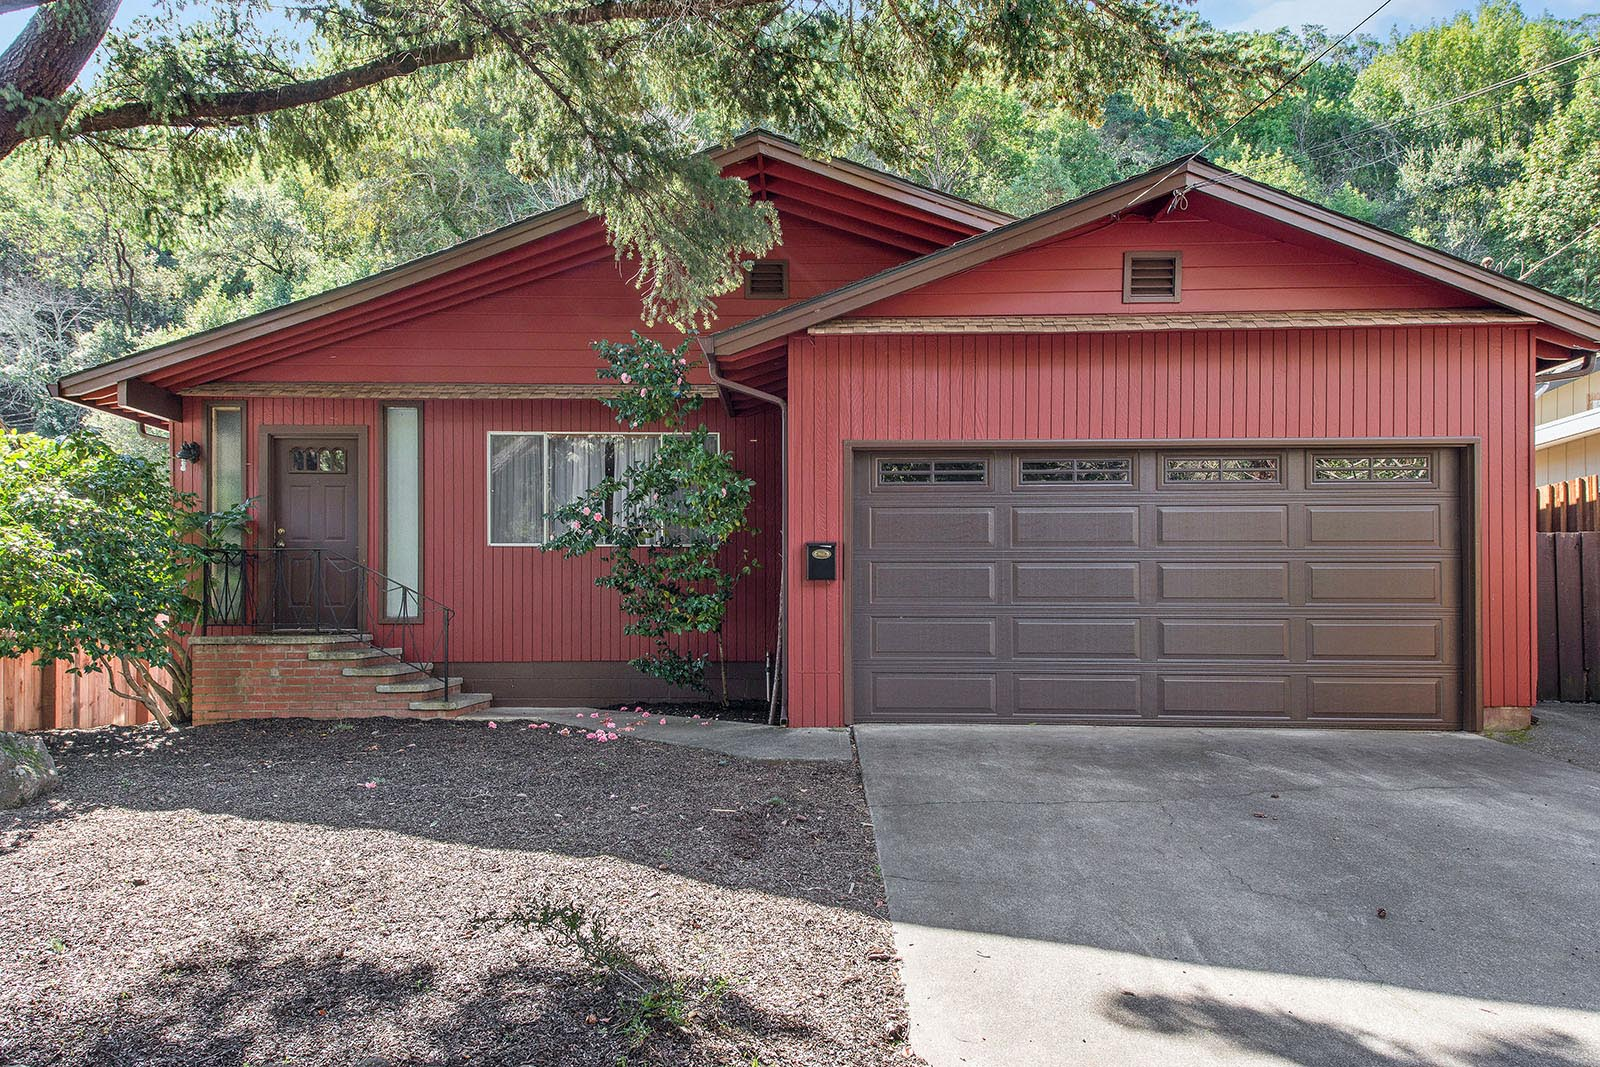 Single Family Home for Sale at One Level Ranch Home on Private Lot 179 Bothin Road Fairfax, California 94930 United States